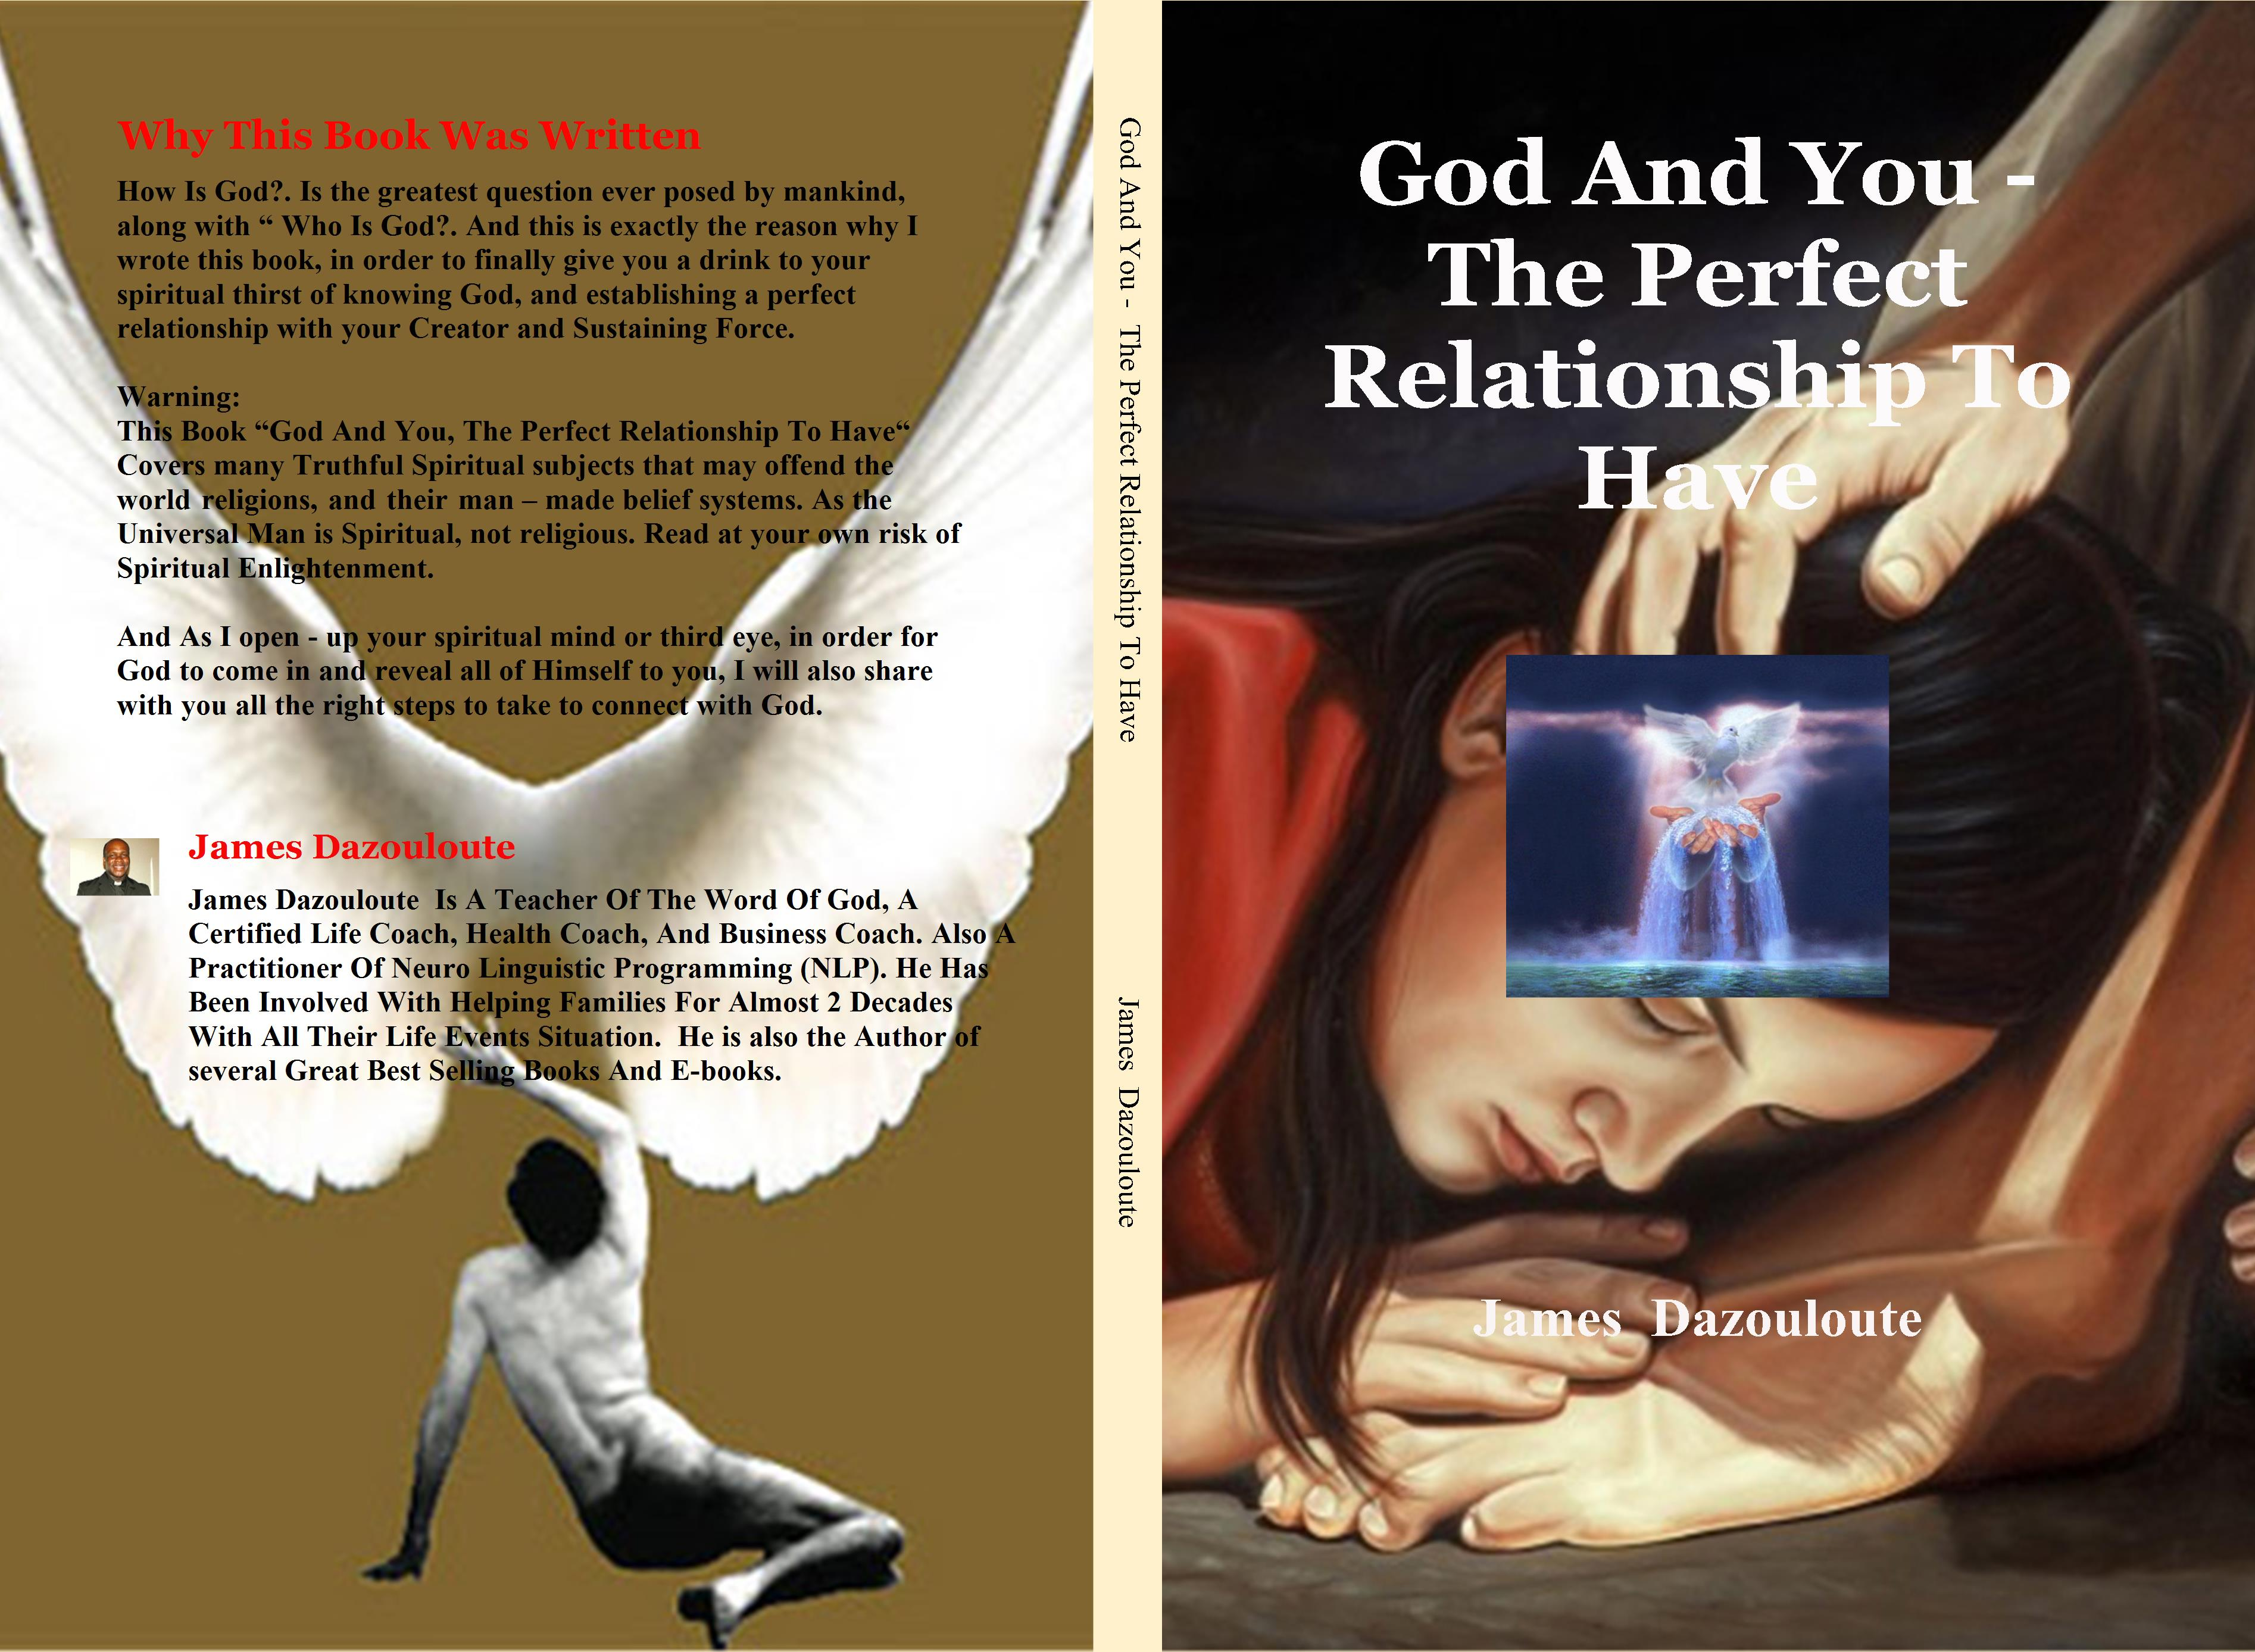 God And You - The Perfect Relationship To Have cover image